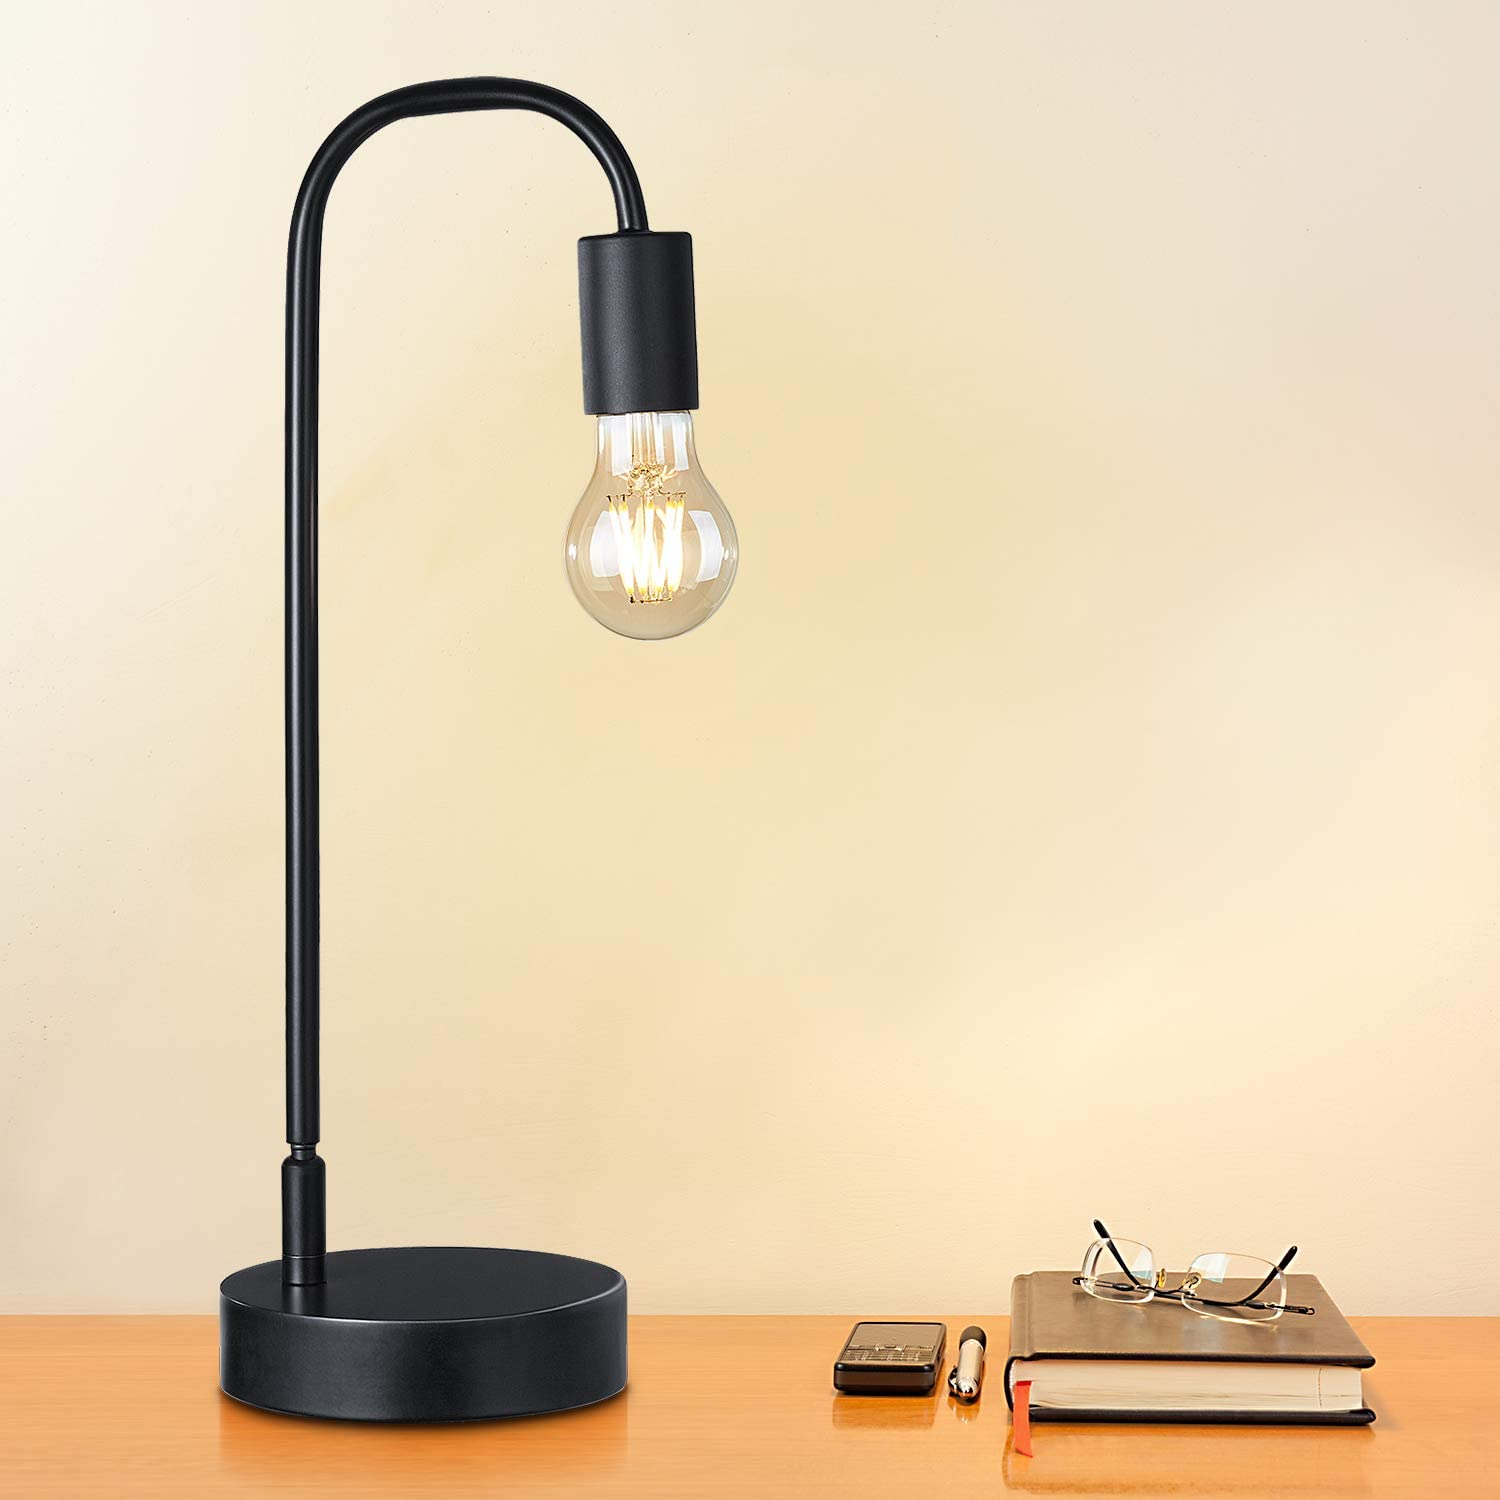 Keymit 3 Way Dimmable Table Lamp